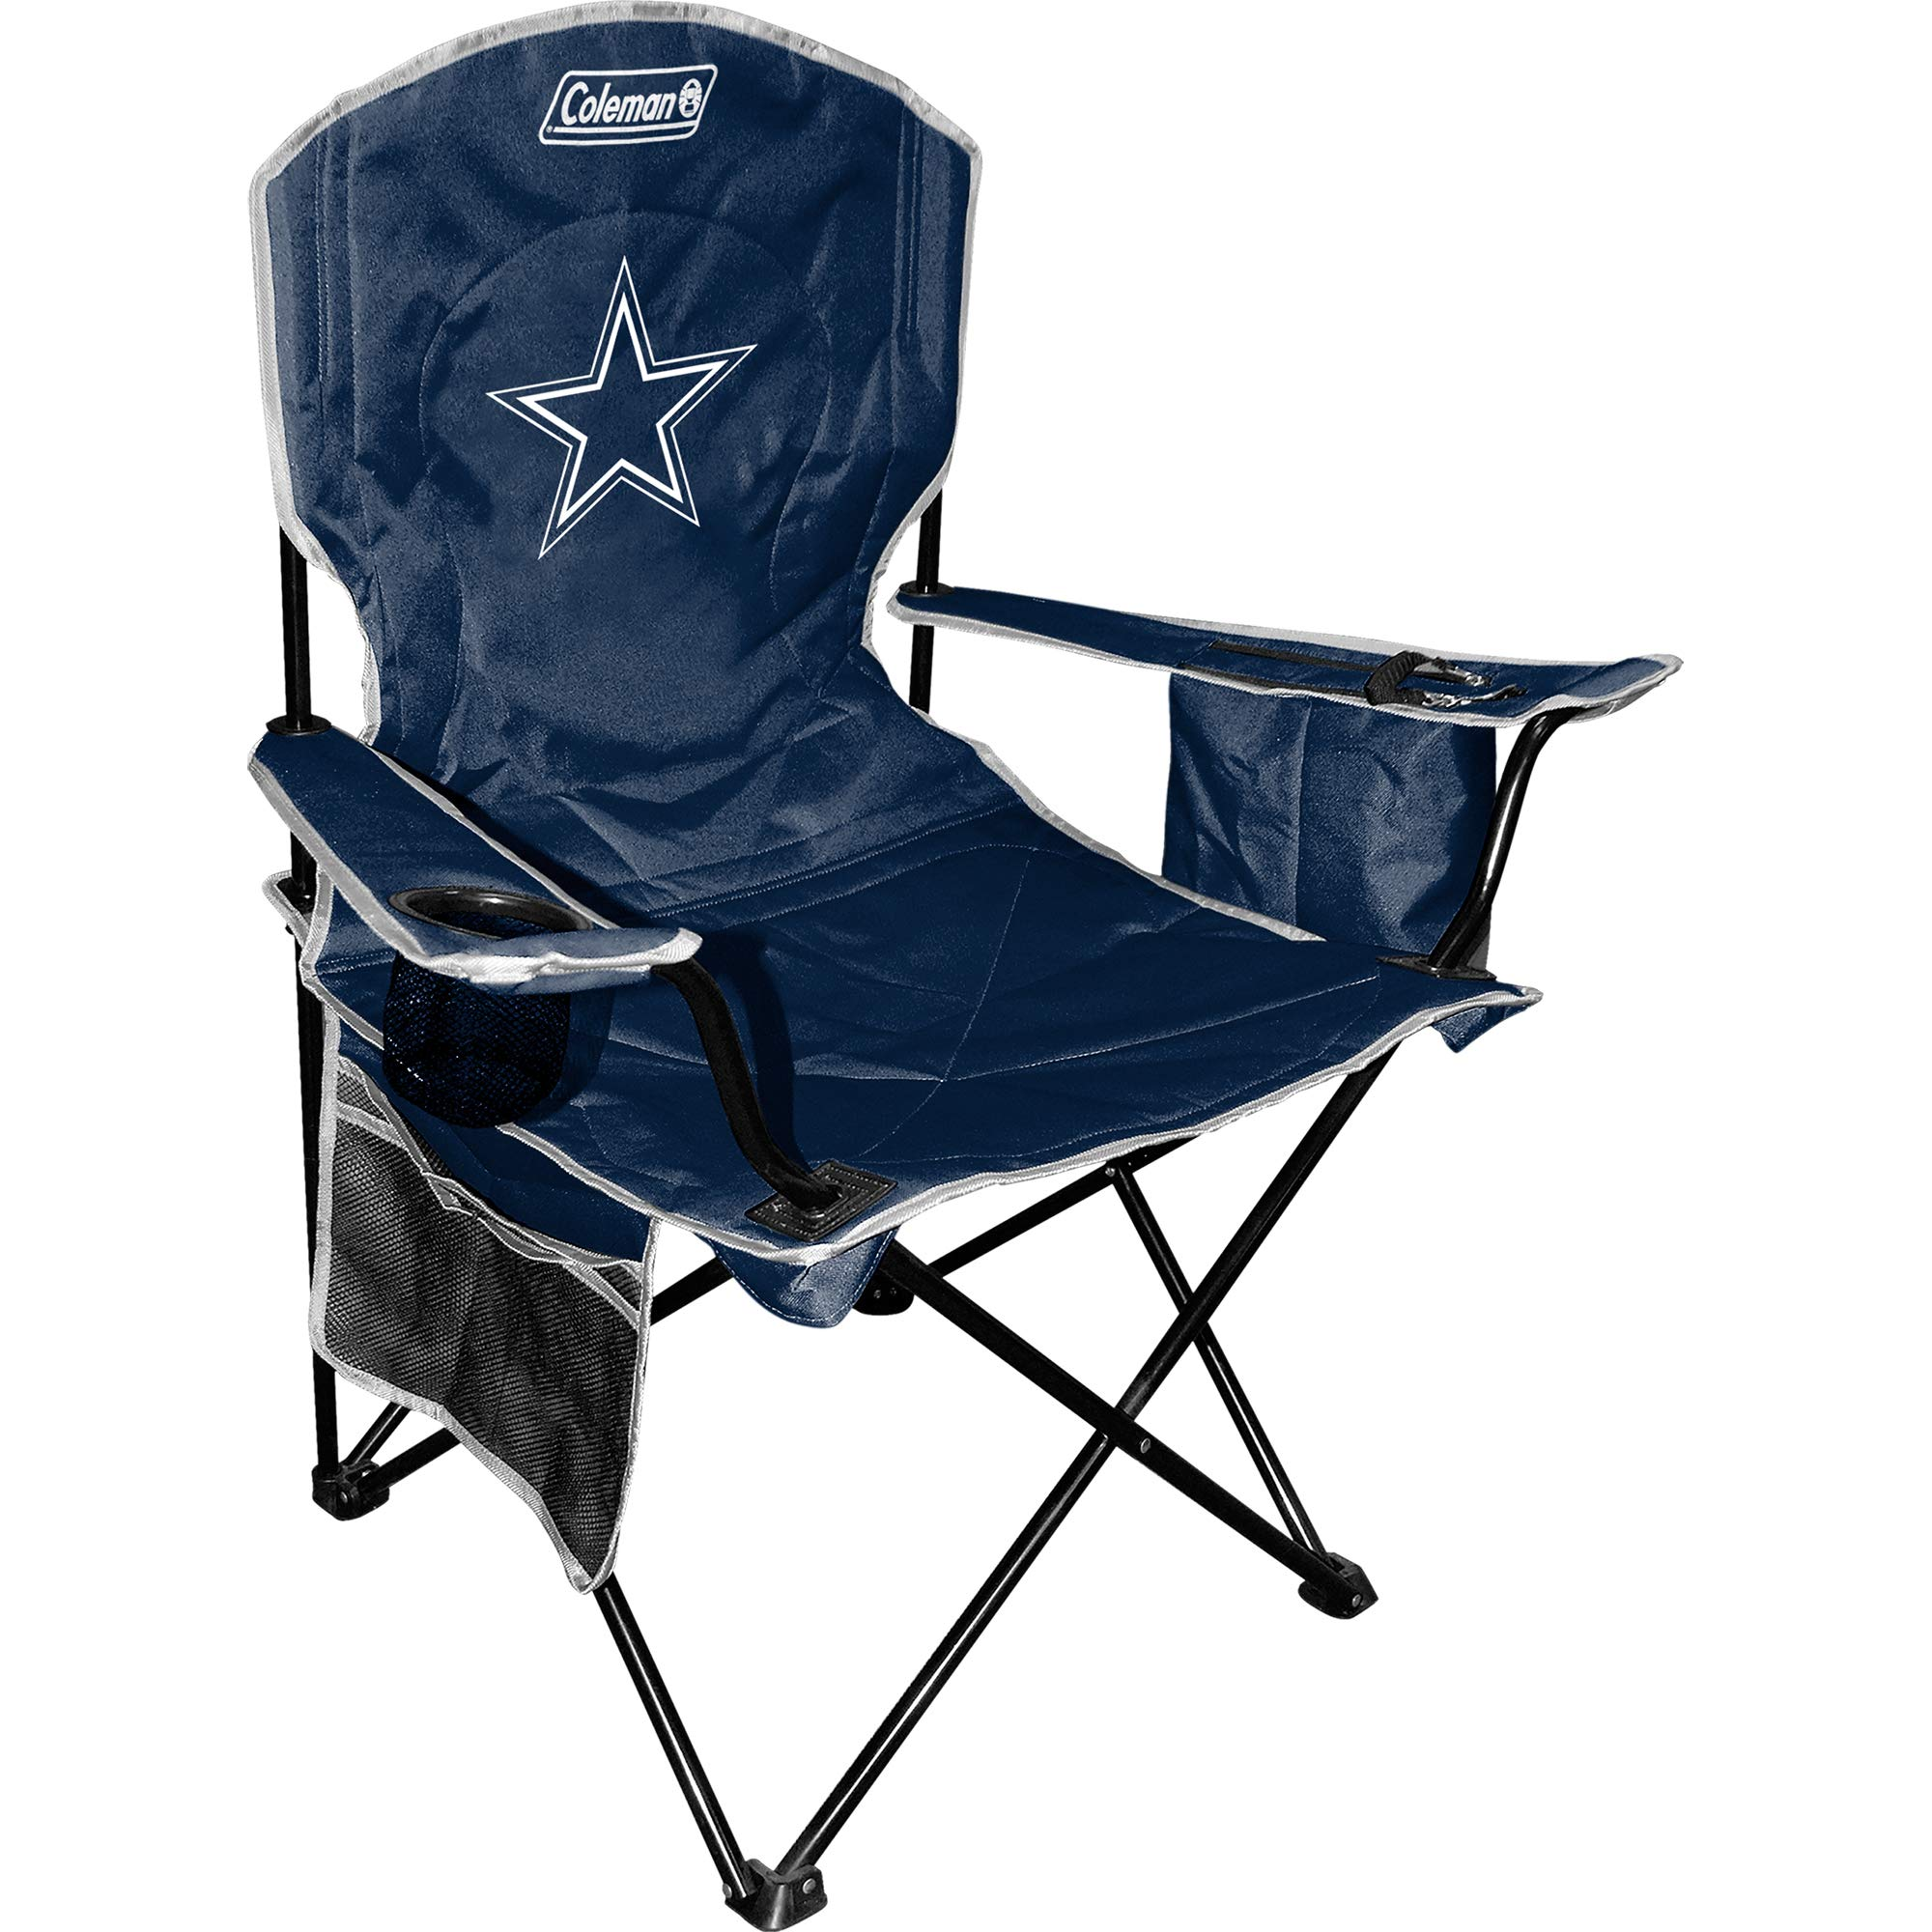 Dallas Cowboys Coleman Cooler Quad Chair - Navy by Coleman